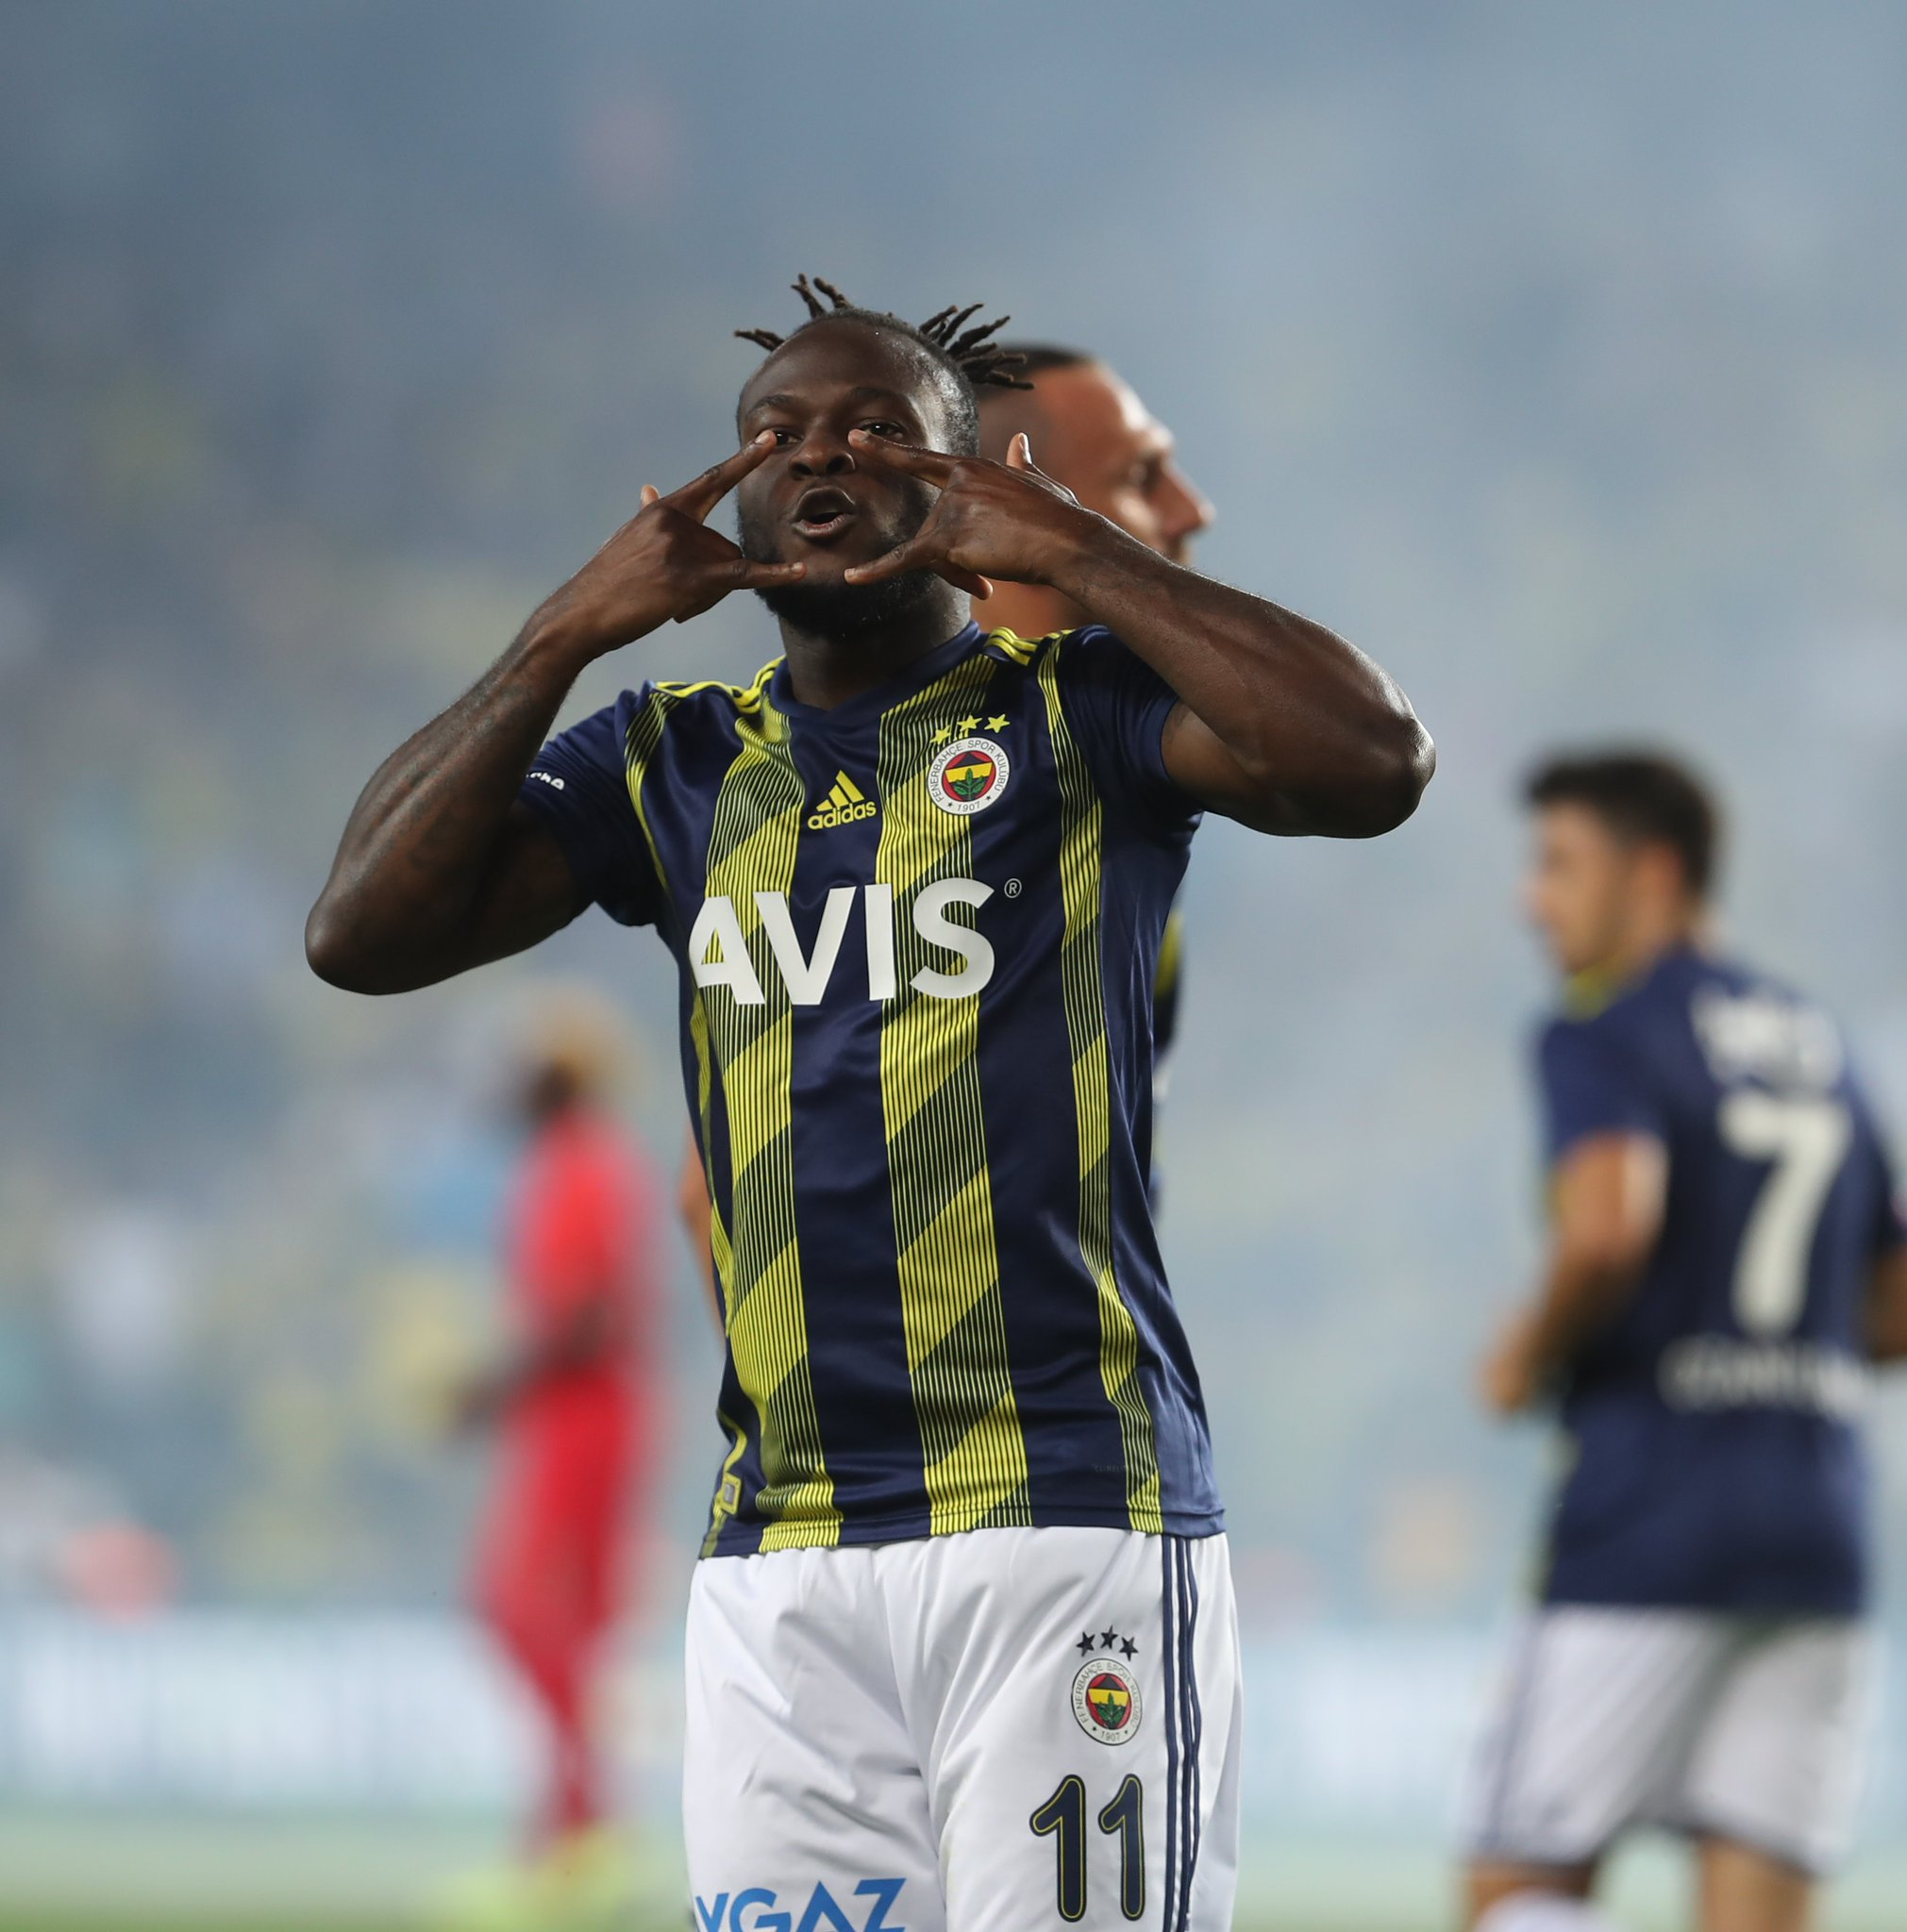 Turkish Super Lig: Moses Scores,   Bags Assist  In Fenerbahce 5-0 Rout Of Gaziantep